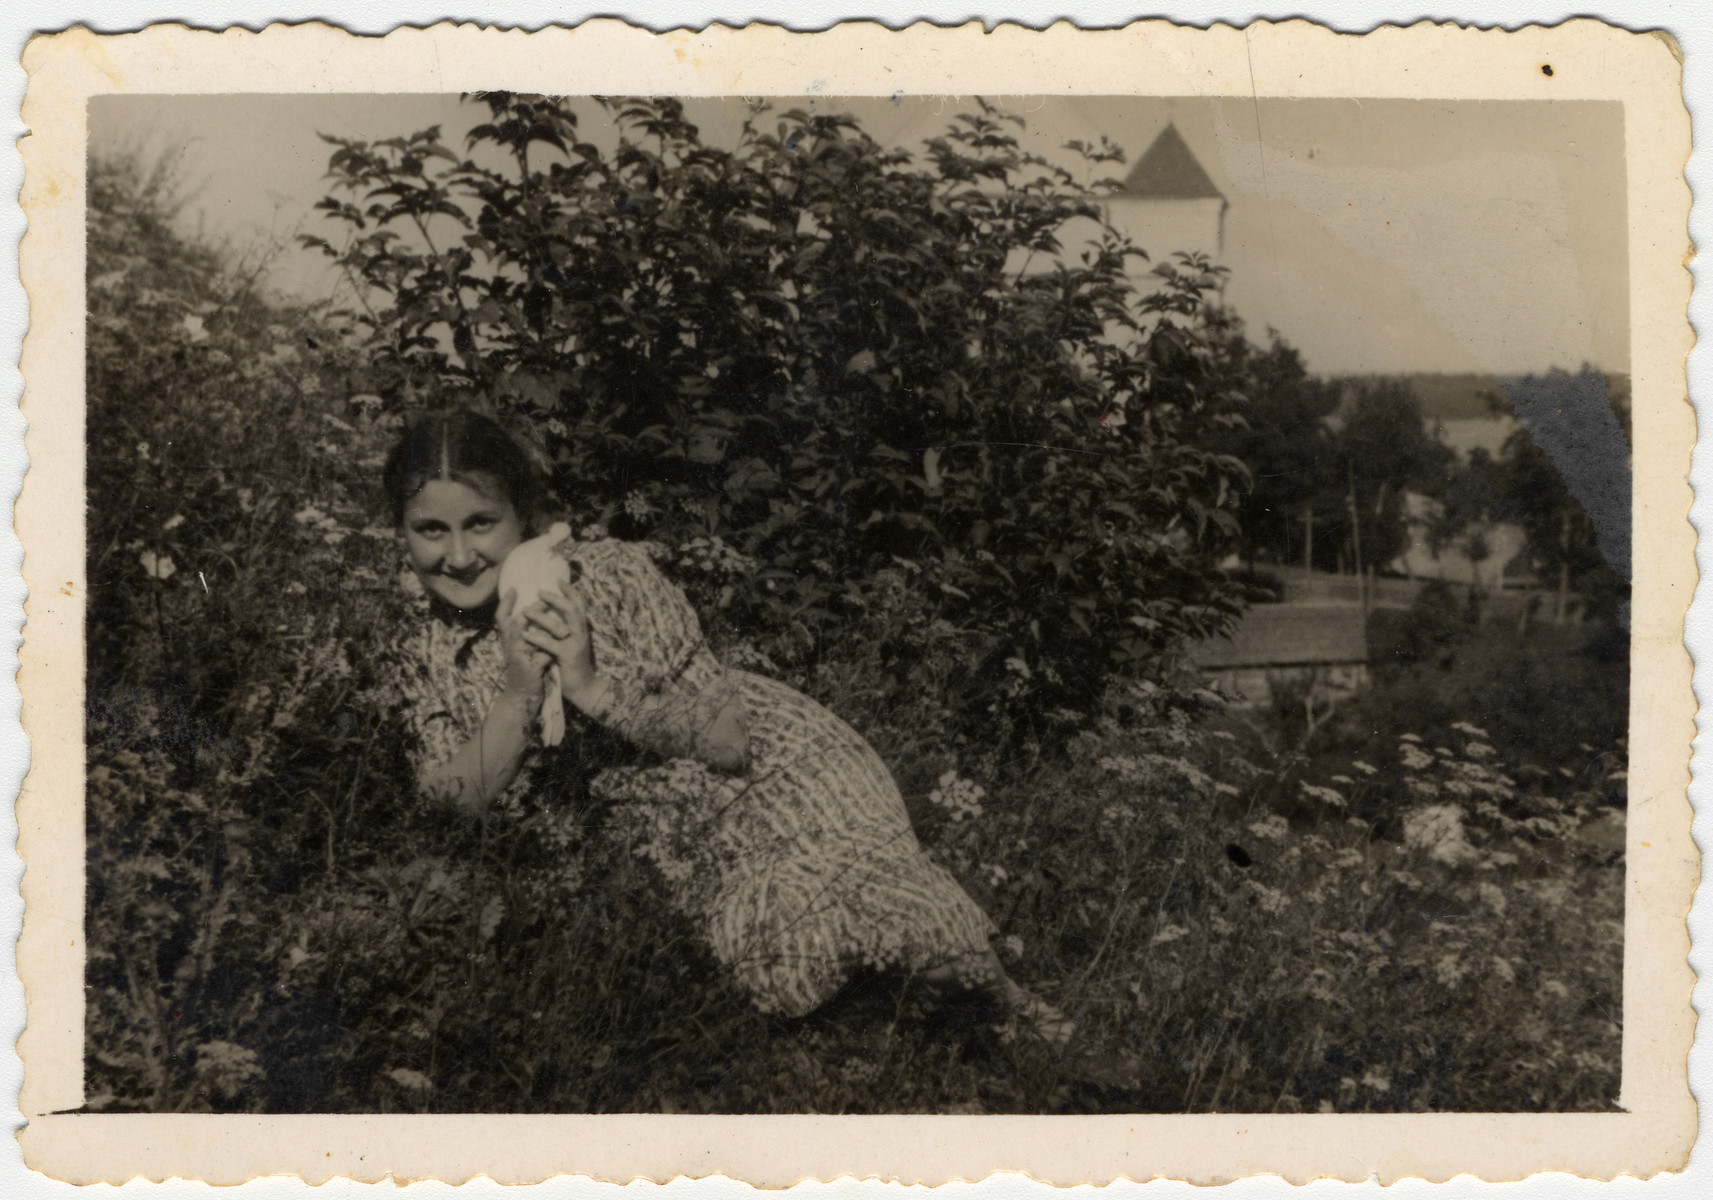 Sonia Boldo lies in a flower bed holding a kitten in prewar Nowogrodek.  Sonia escaped from the Nowogrodek ghetto in 1942 and came to the forest.  There she met and married Zus Bielski.